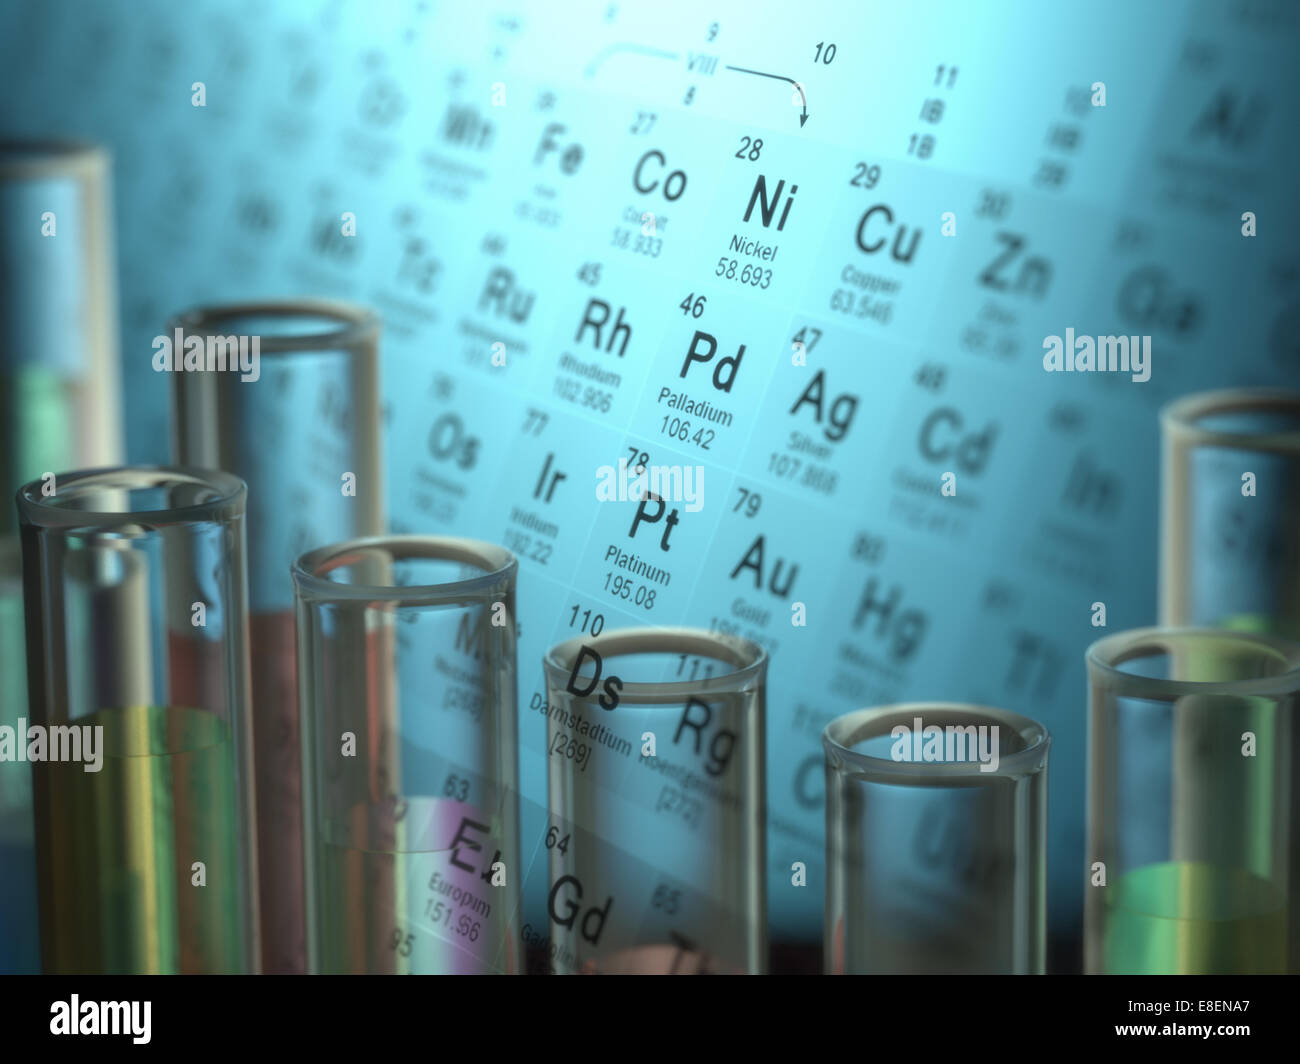 Periodic table of elements background image collections periodic test tubes with chemical elements inside and periodic table on test tubes with chemical elements inside urtaz Choice Image